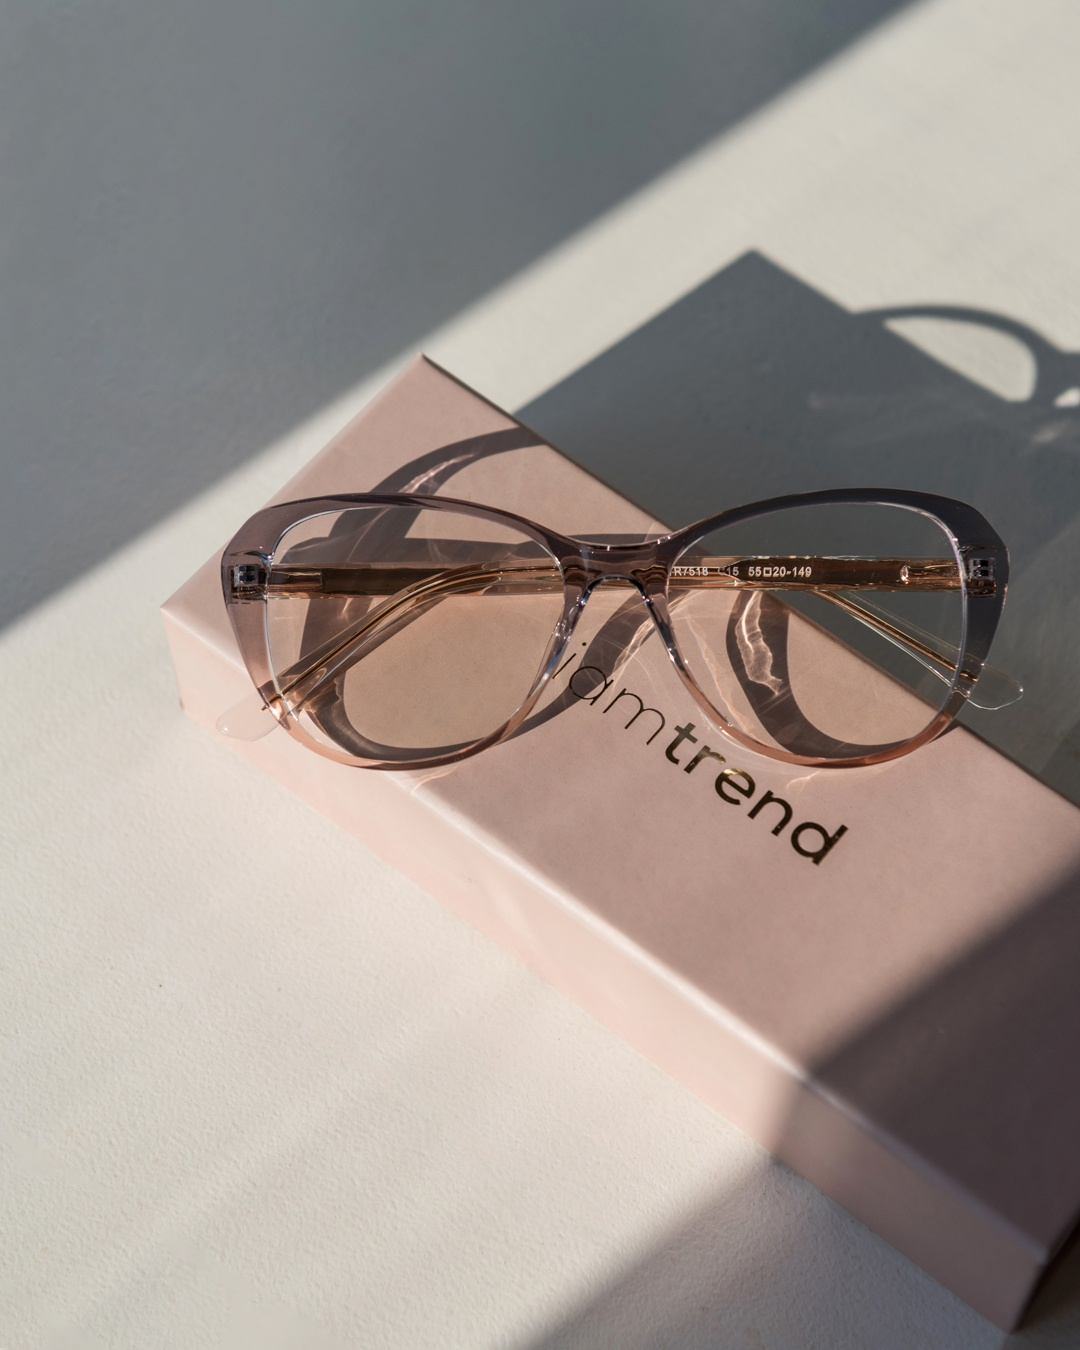 Butterfly frame glasses with a two-toned blue & pink silhouette rest on a pink iamtrend case.